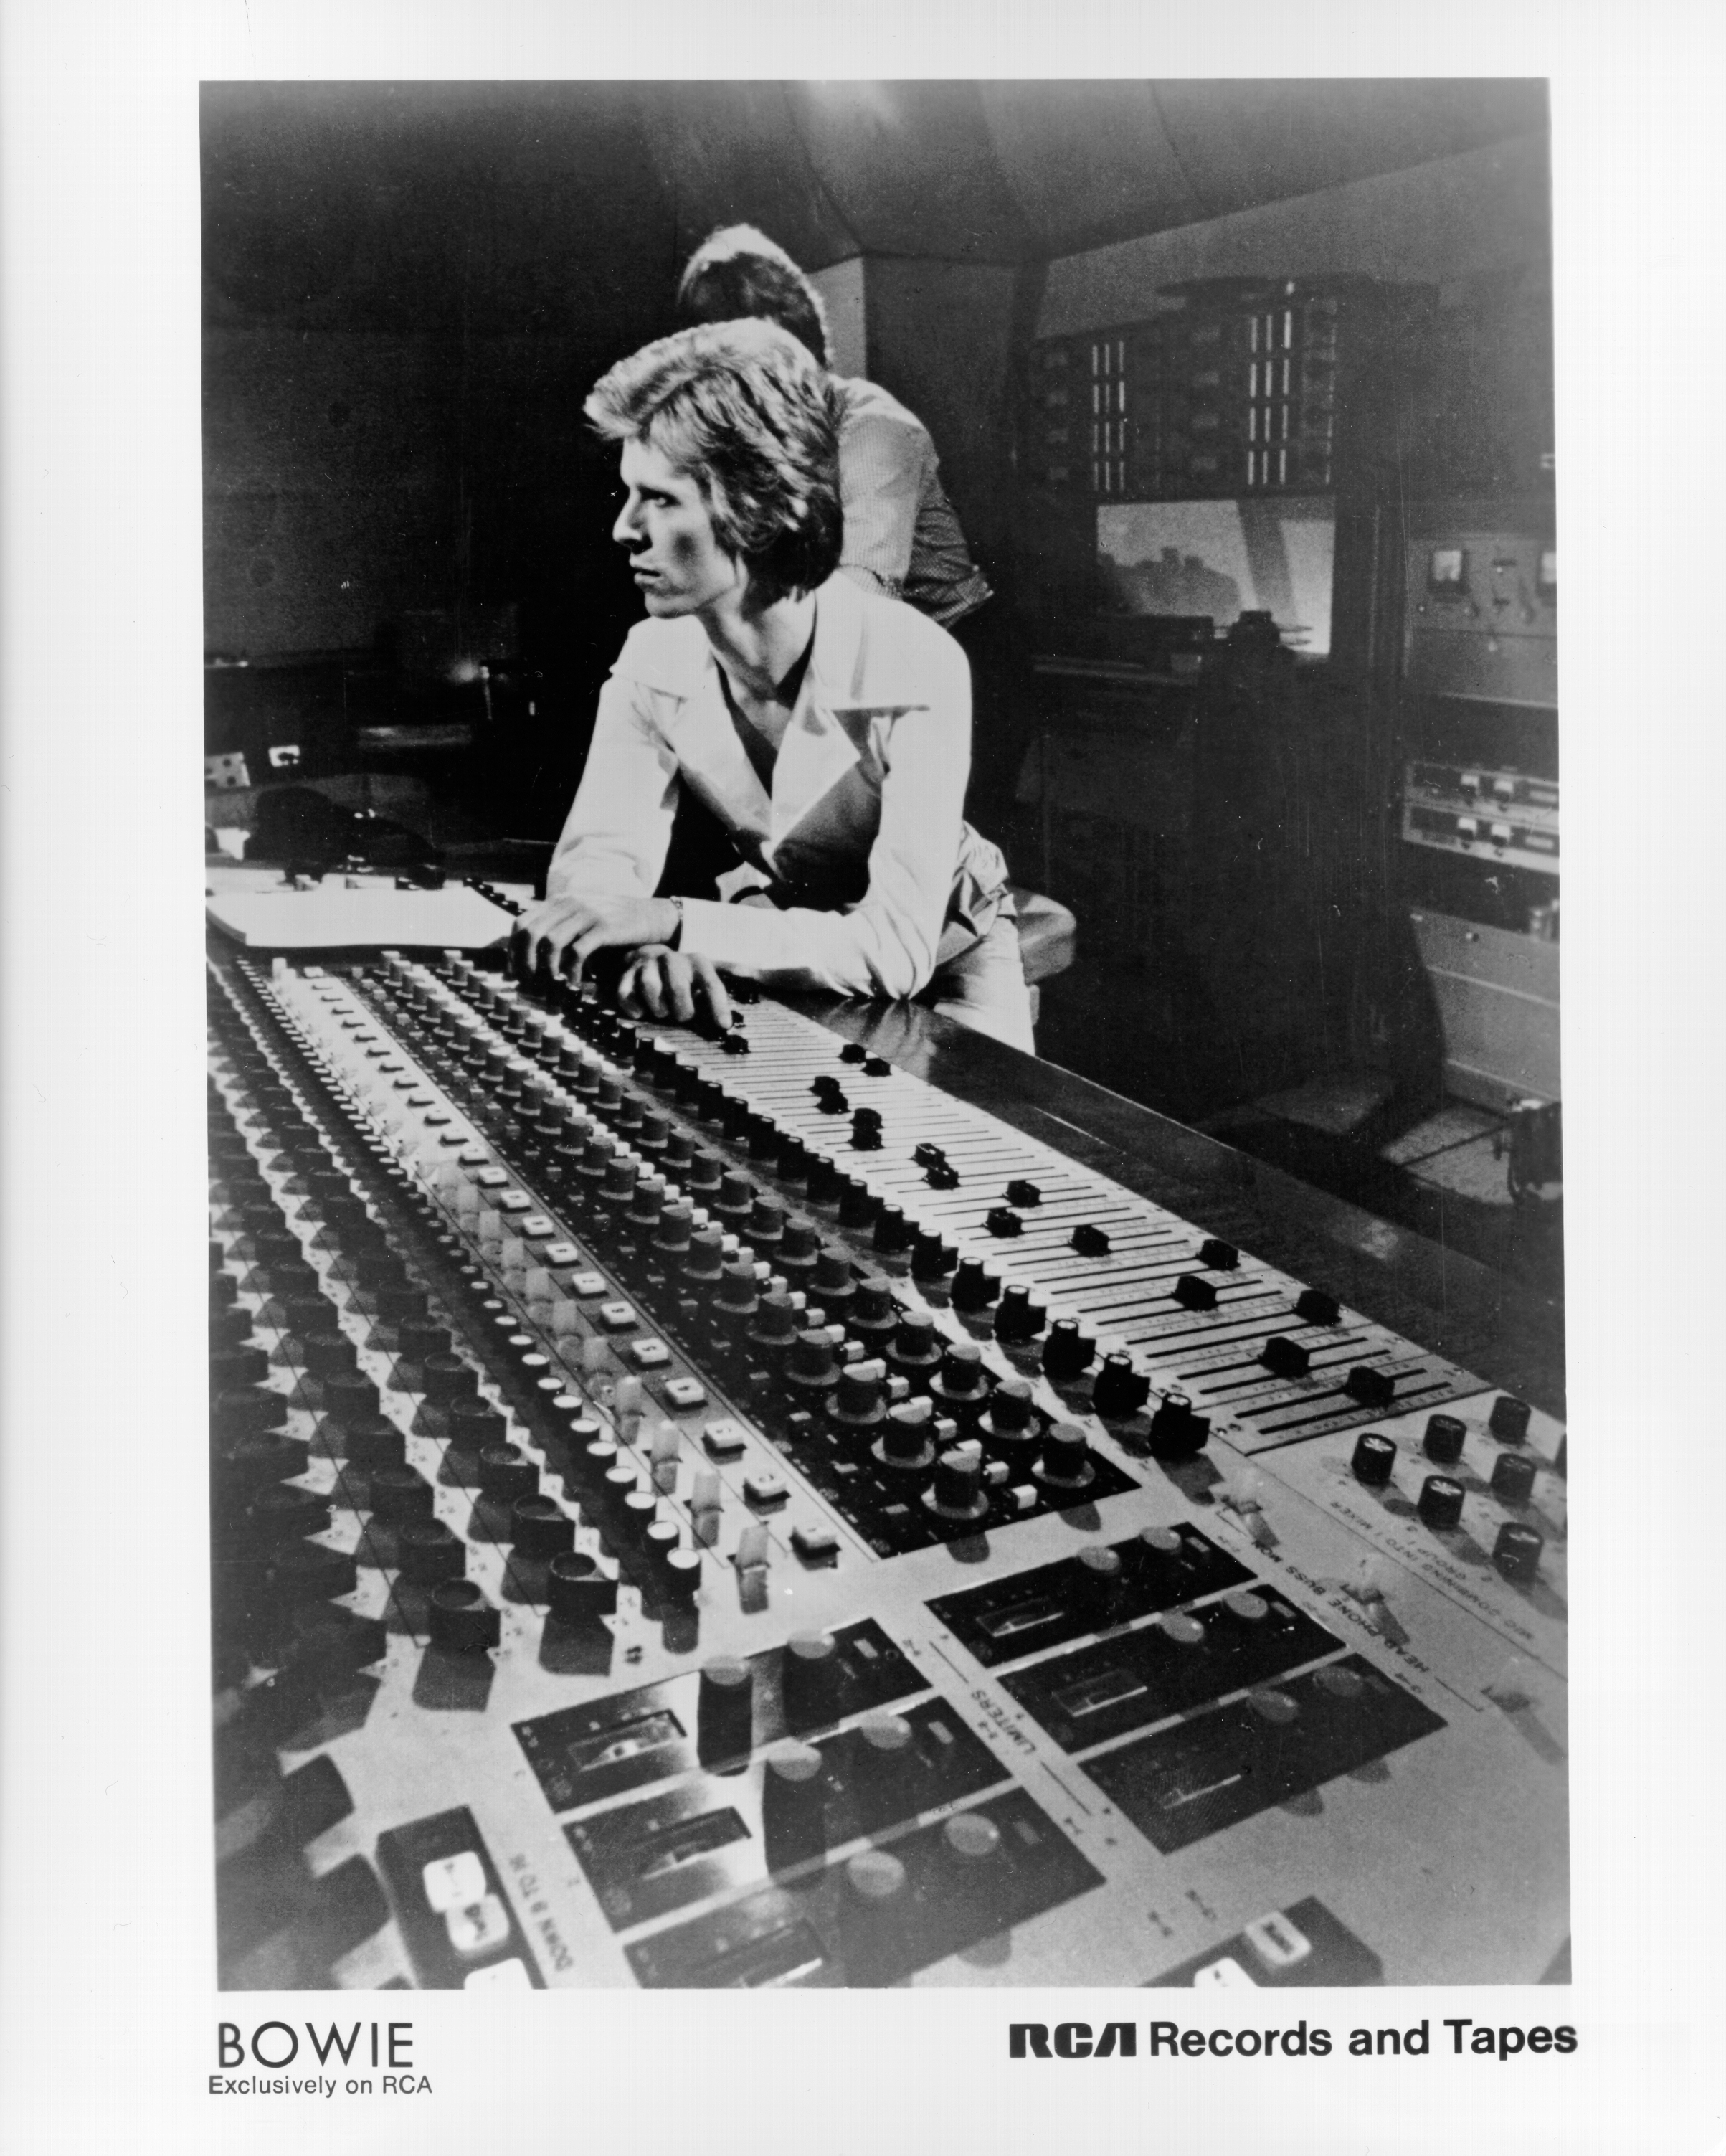 CIRCA 1975:  Musician David Bowie sits at the console mixing board in a studio in circa 1975. (Photo by Michael Ochs Archives